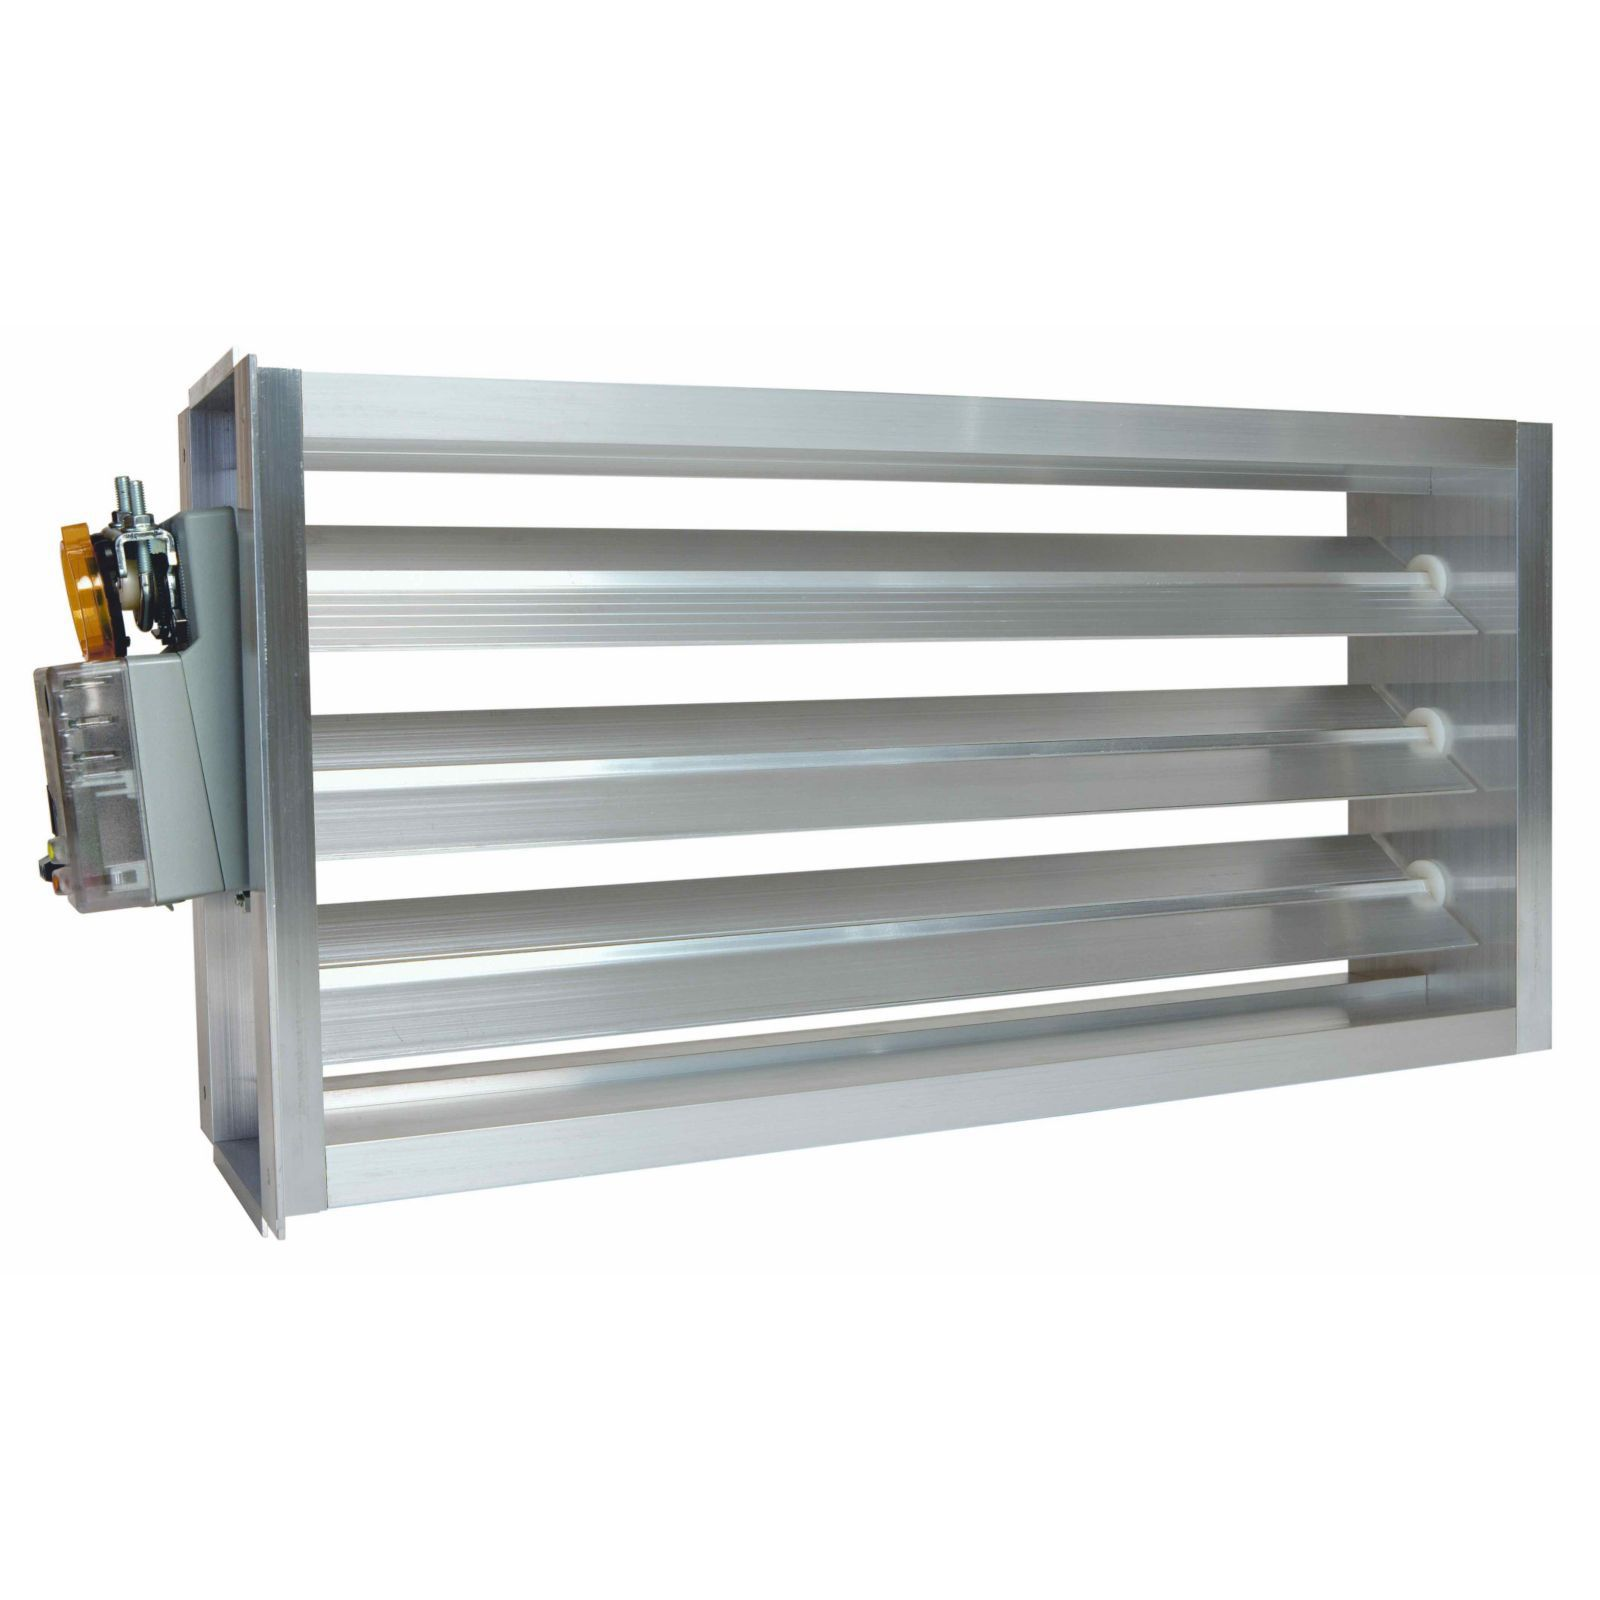 "EWC 10X12 ND - Motorized Ultra-Zone Damper, 10"" X 12"""